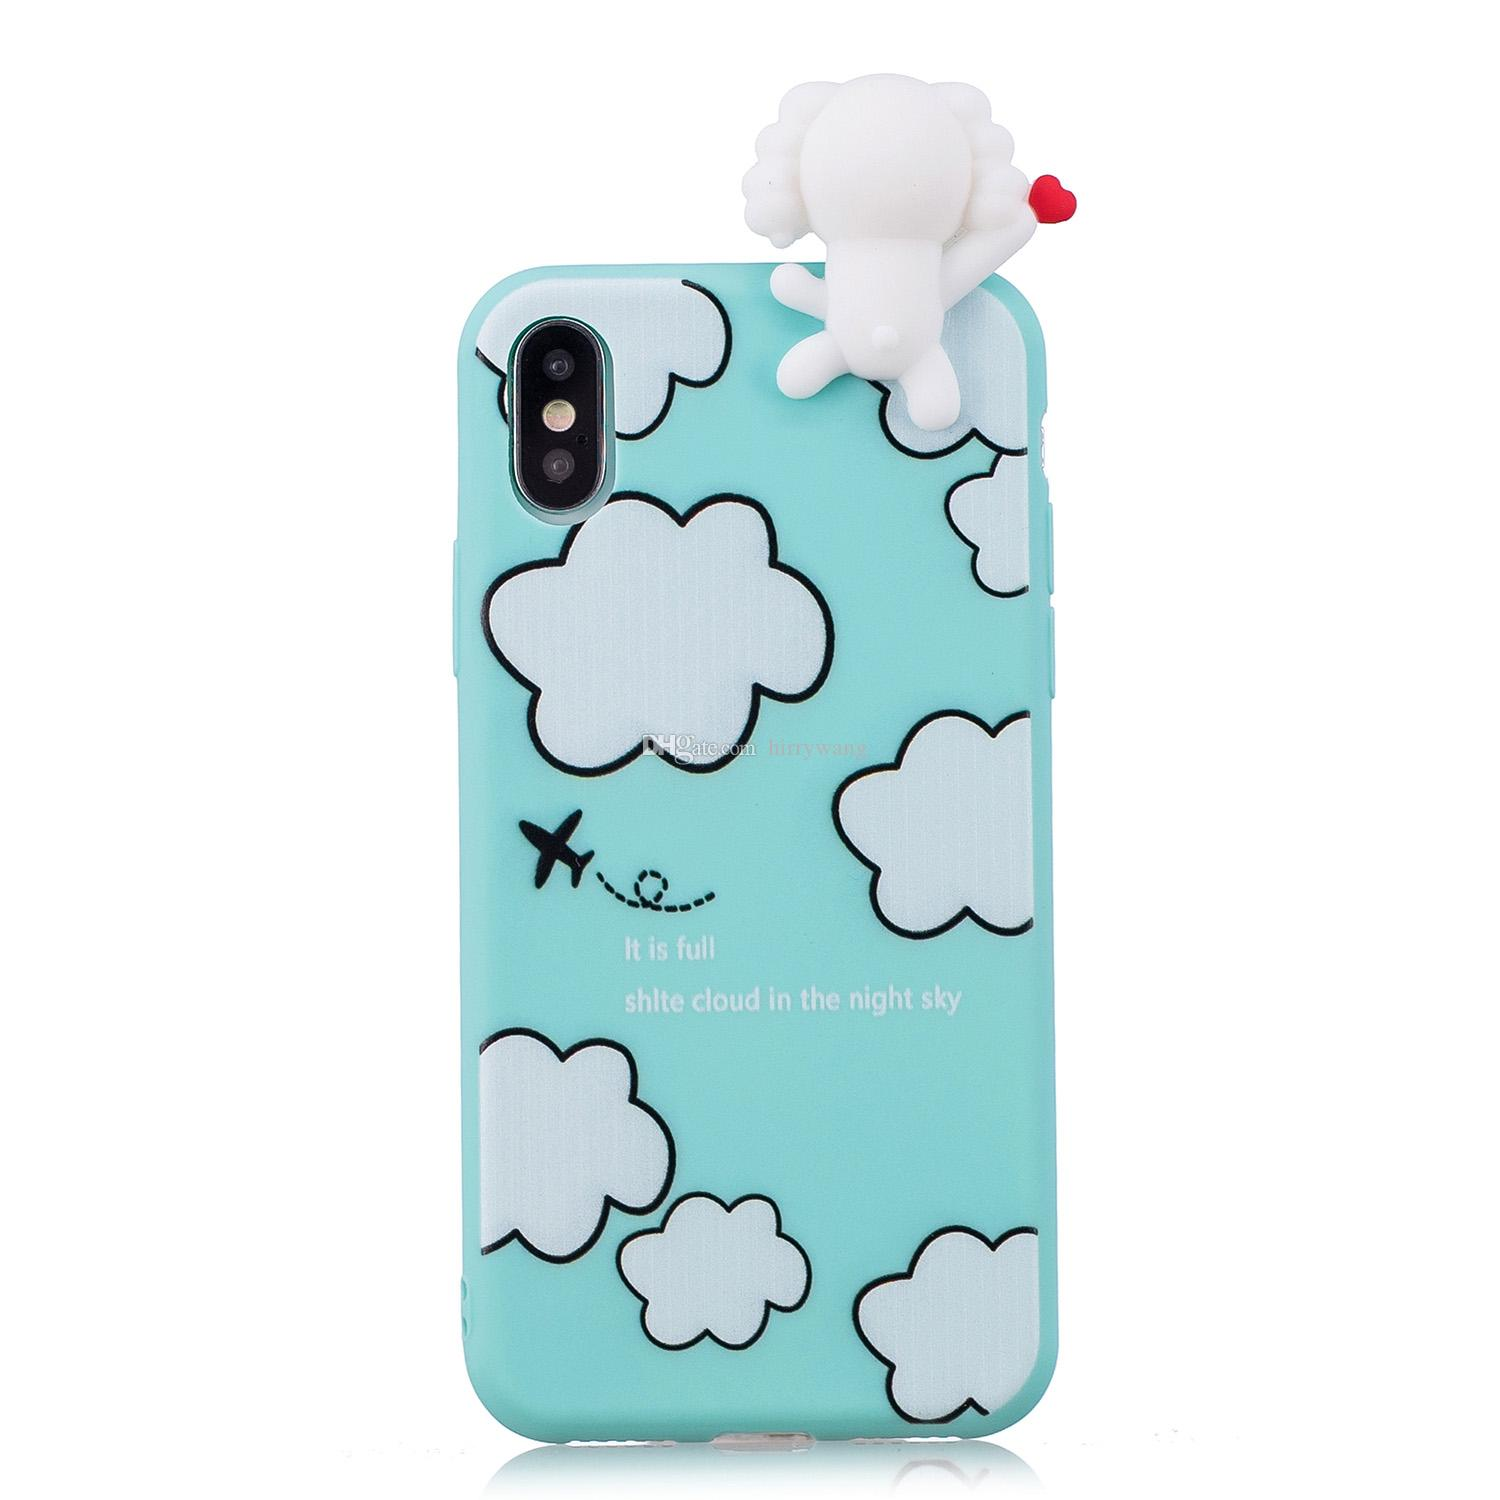 3D Cute Lovely Cartoon Unicorn Soft Silicone Rubber Mobile Phone Case Cover for Iphone 8 7 I7 6S 6 plus SE 5 5S